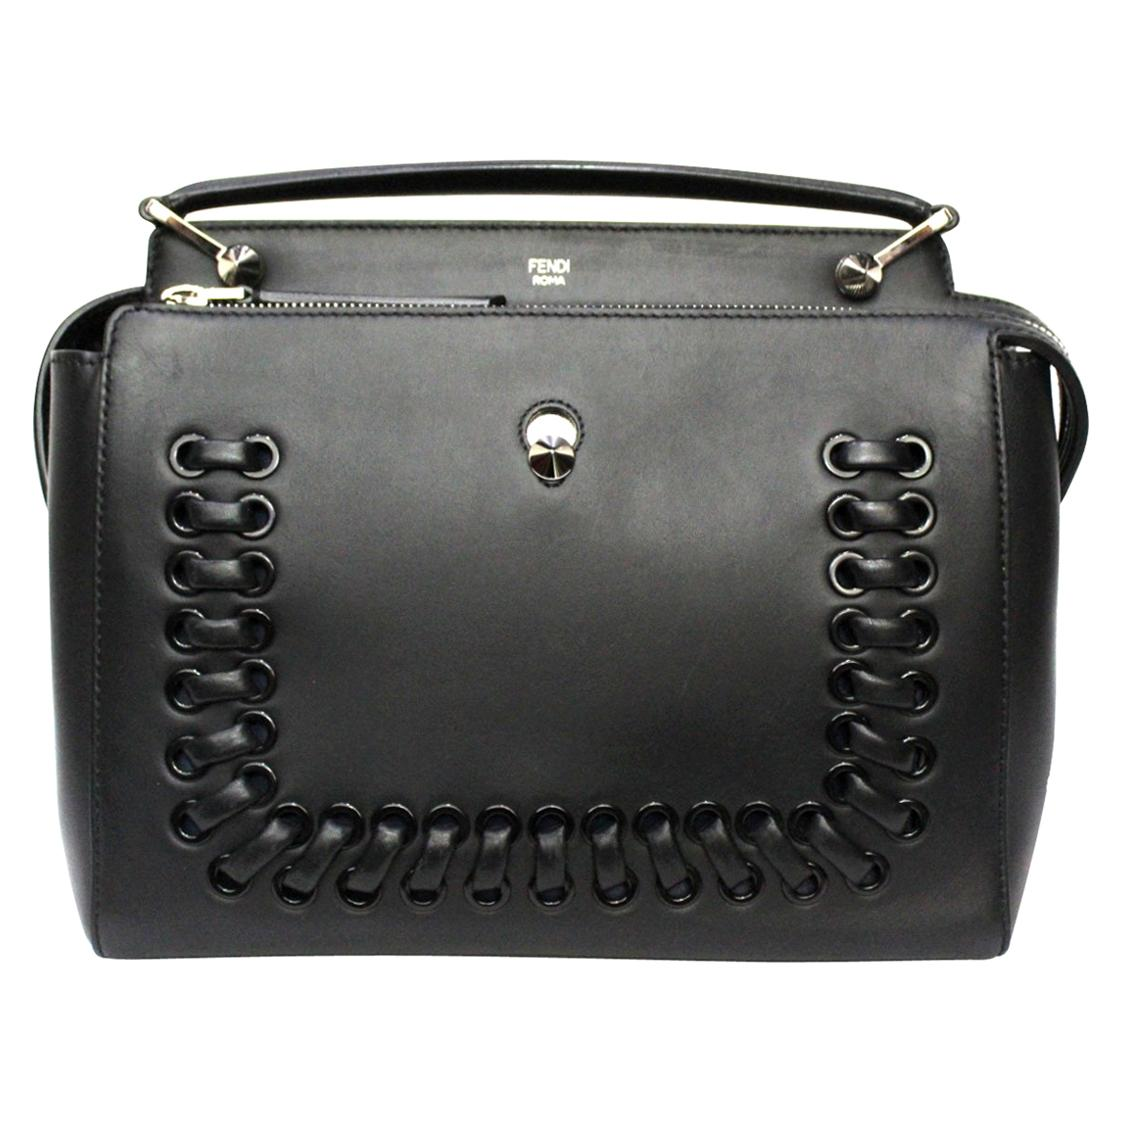 Fendi Black Leather DotCom Bag